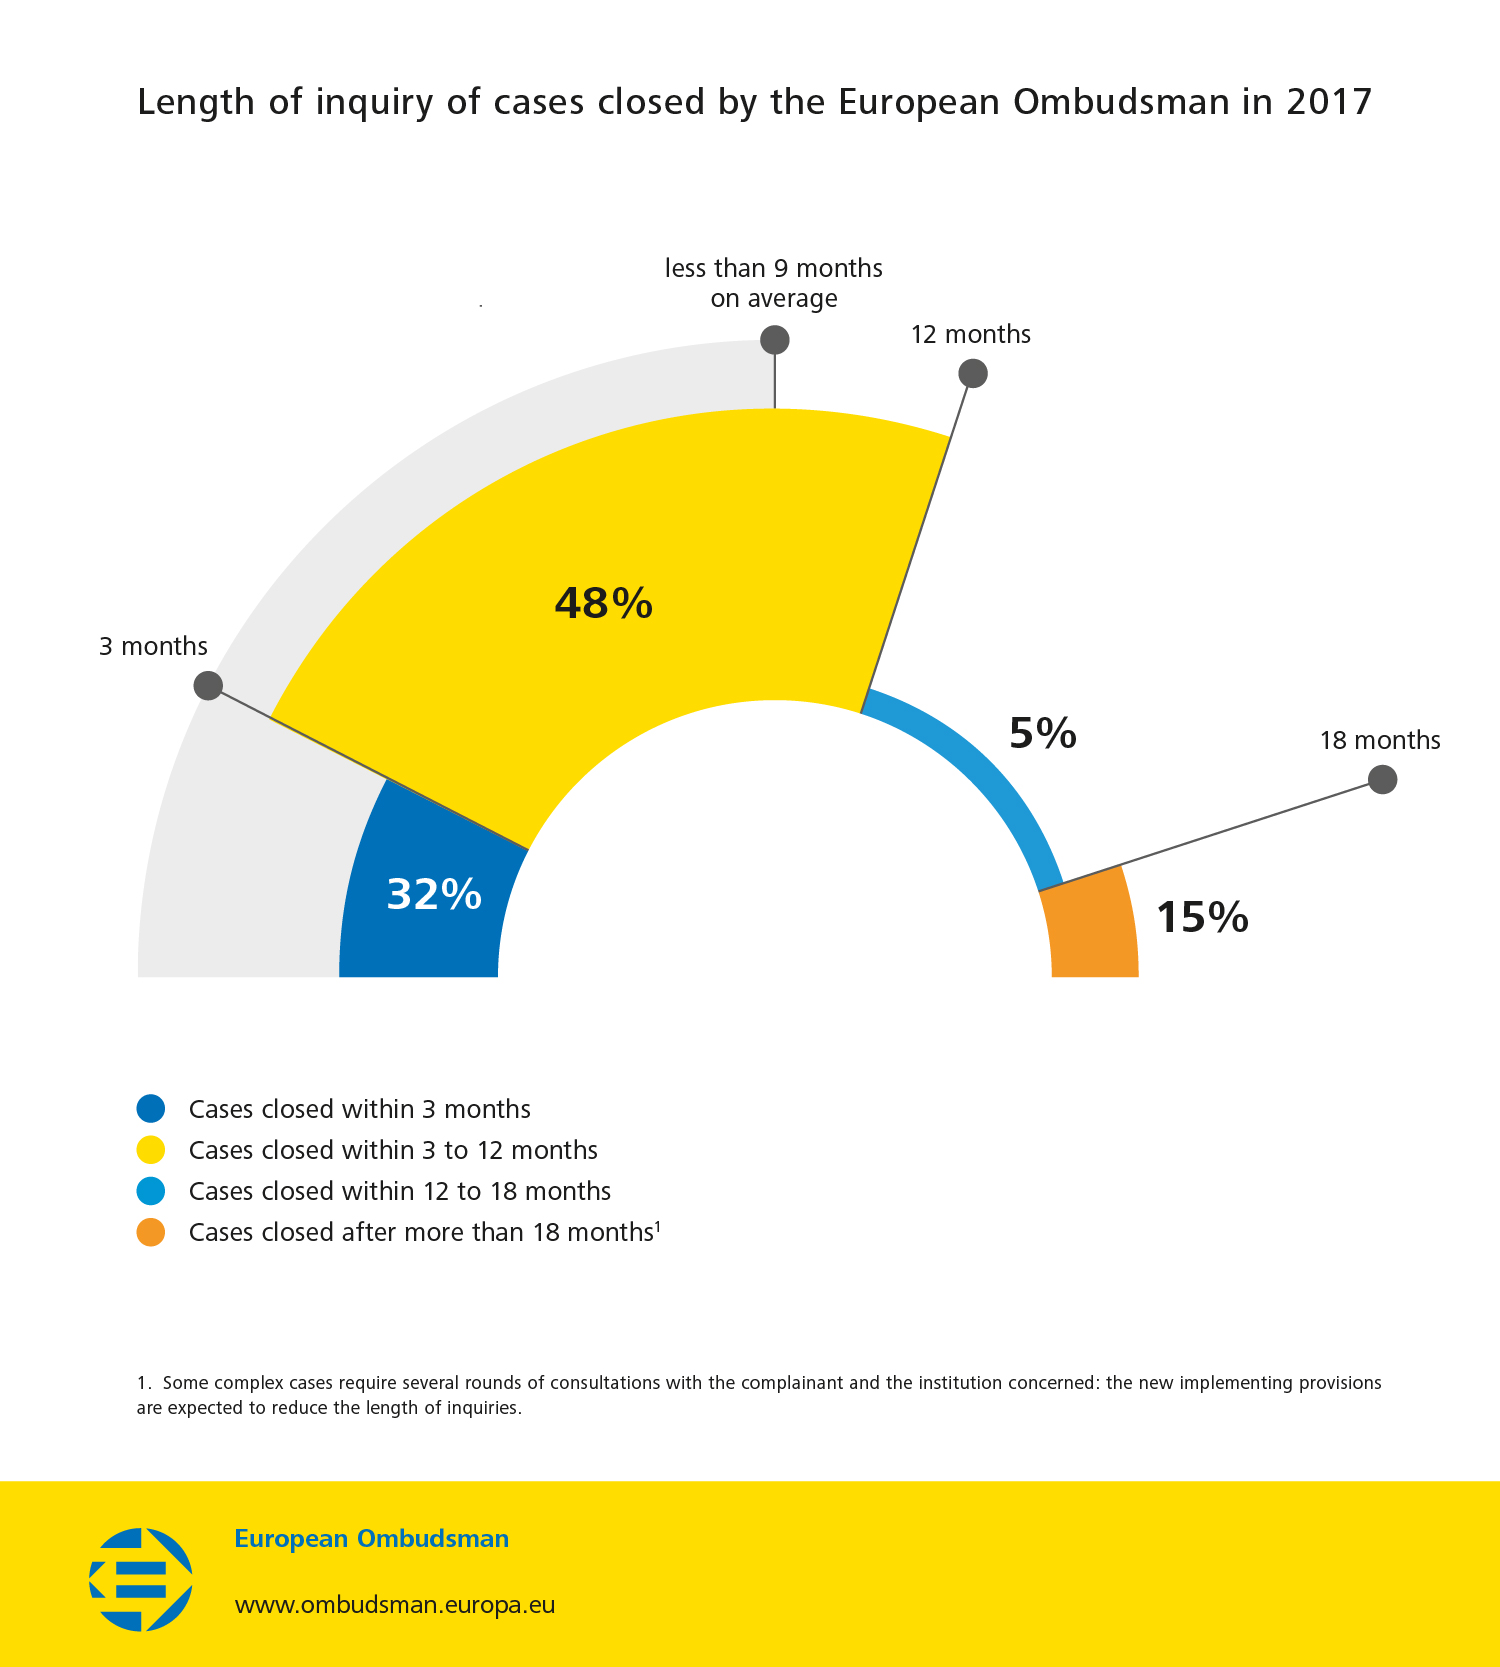 Length of inquiry of cases closed by the European Ombudsman in 2017